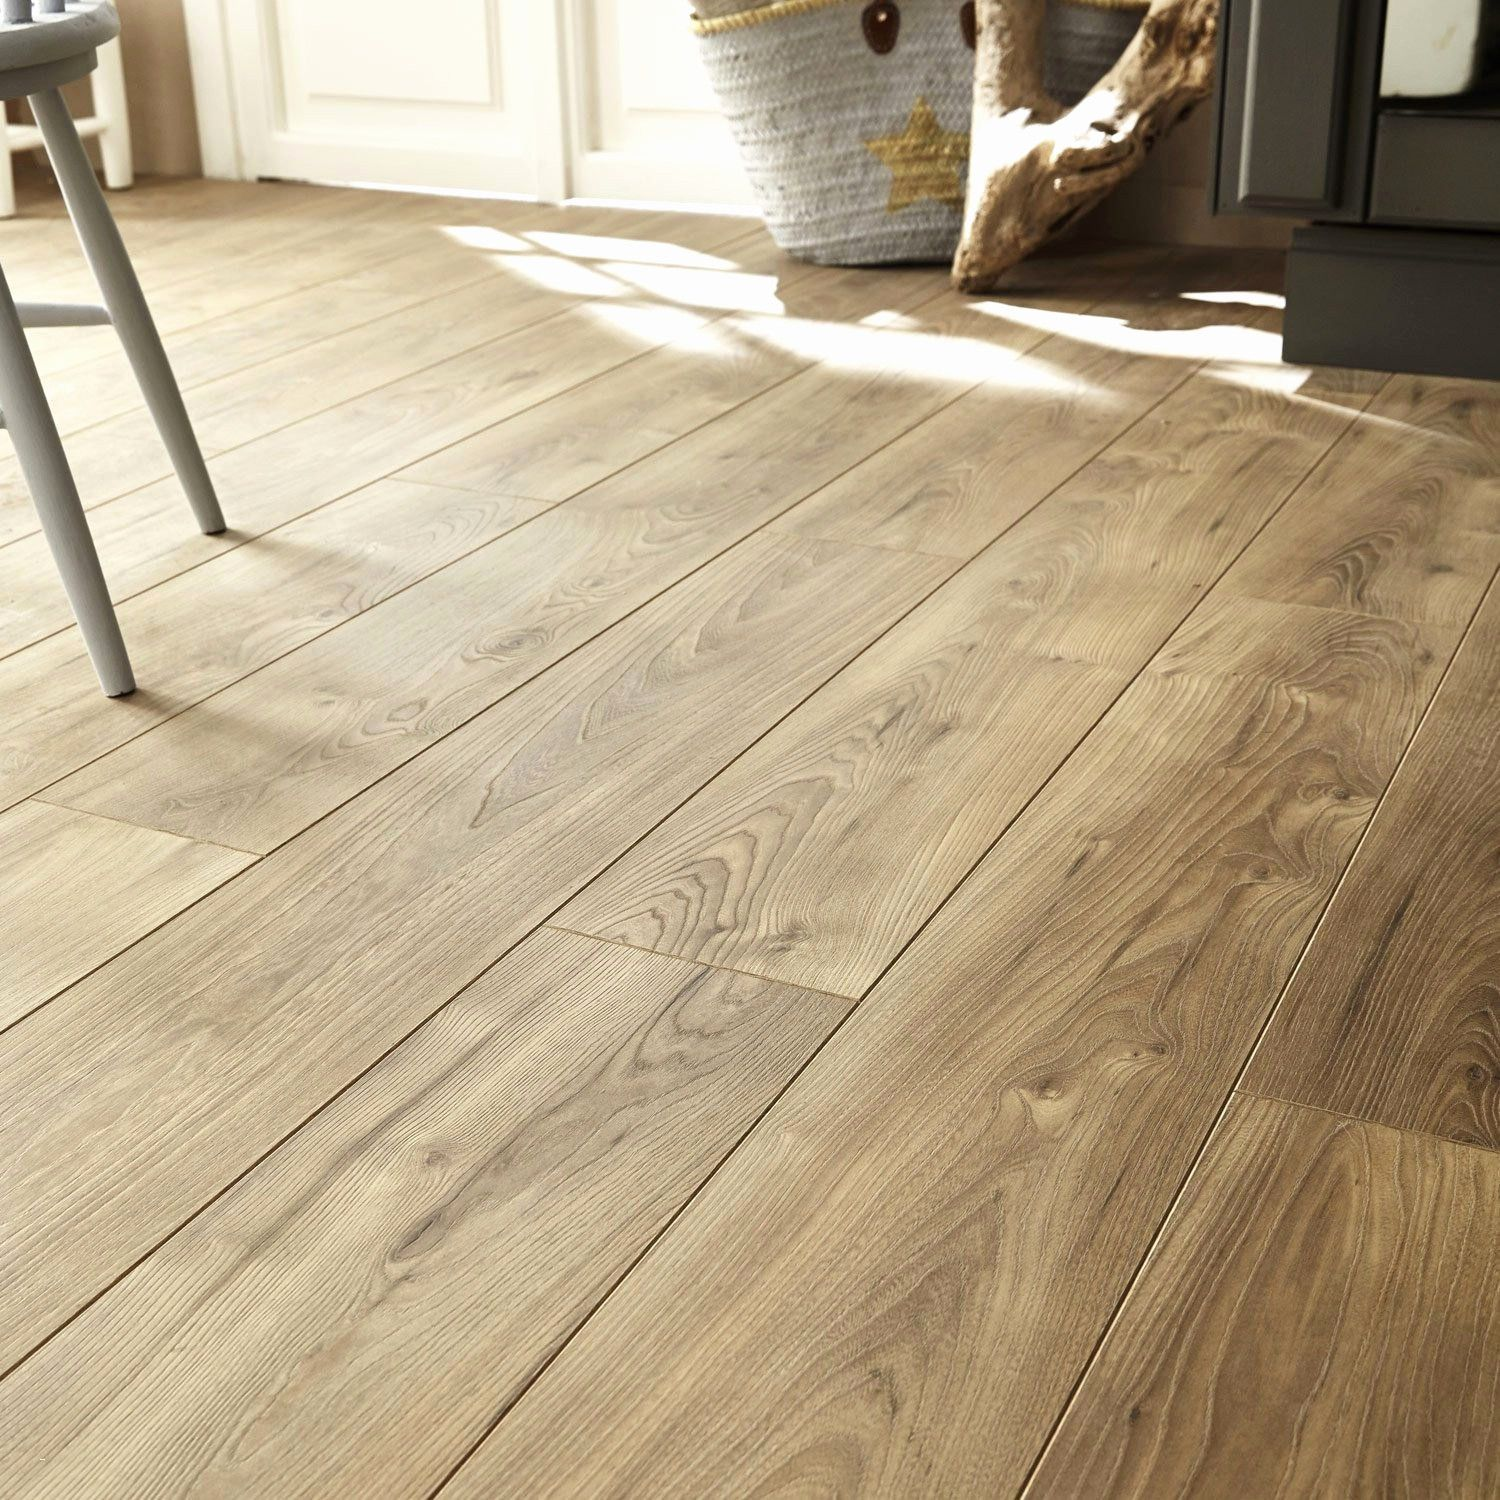 Awesome Parquet Flottant Leroy Merlin Promotion Sol Stratifie Parquet Stratifie Parquet Flottant